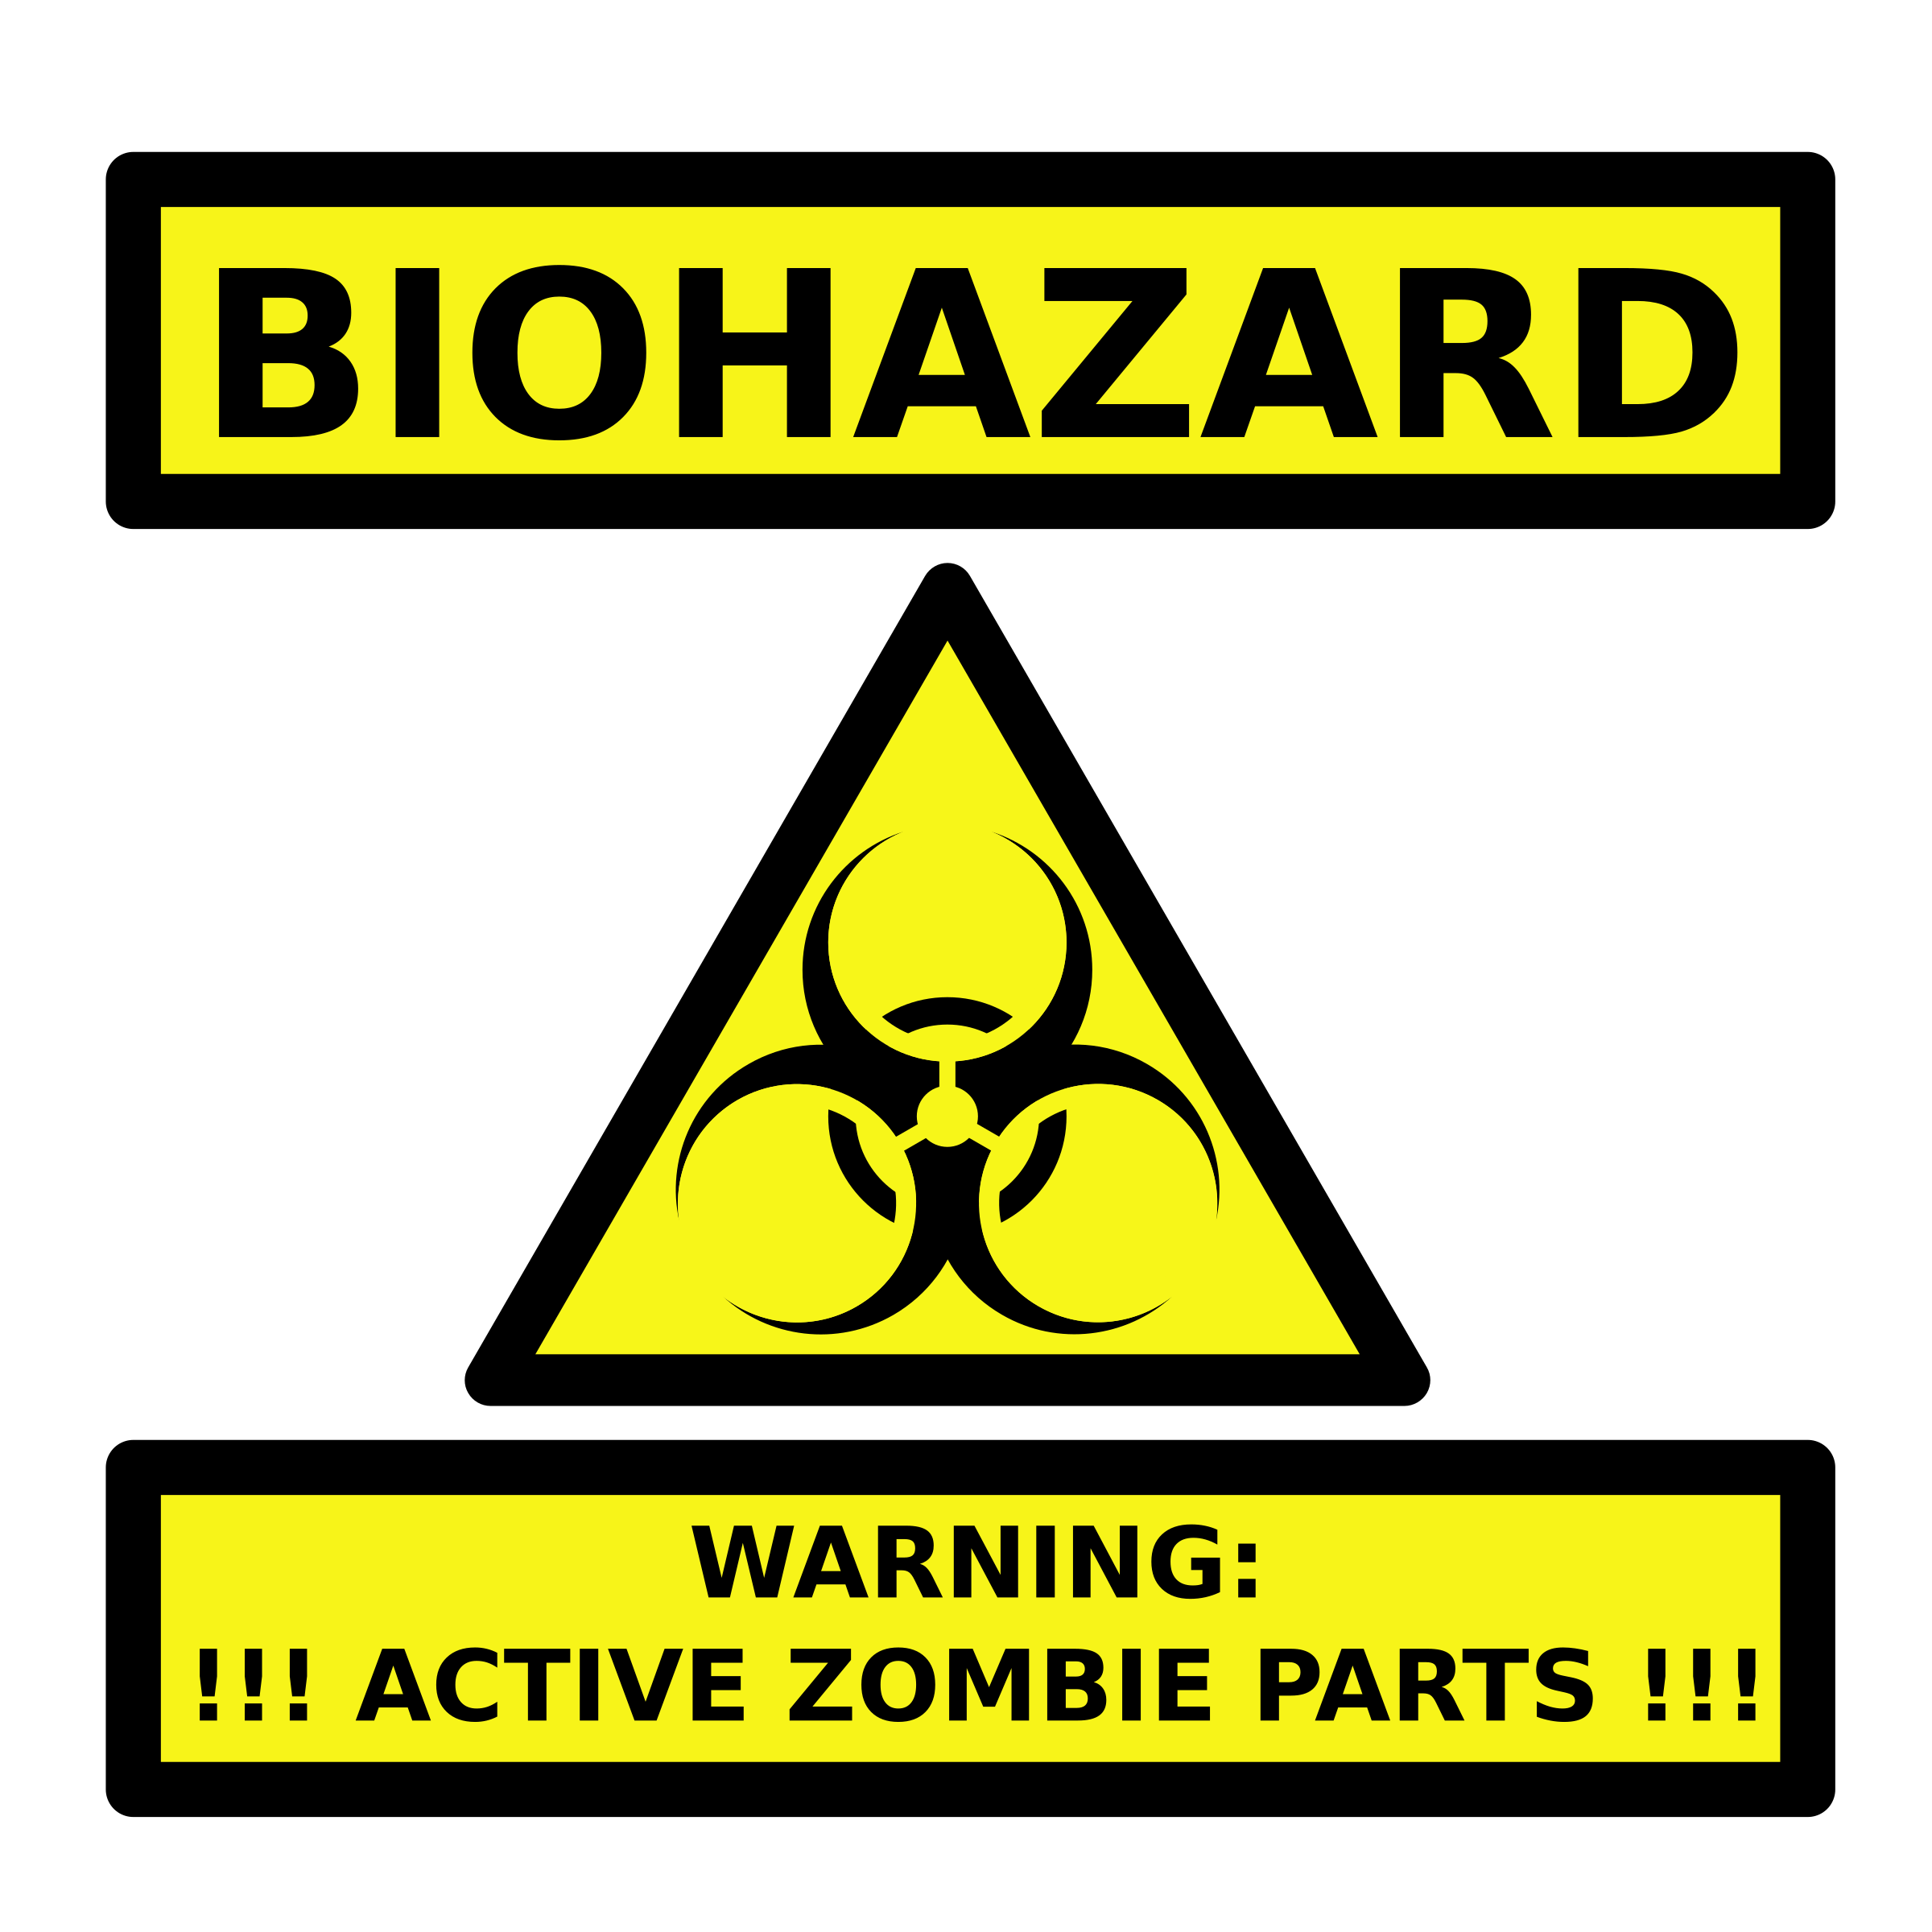 Ripped baseball player clipart clip art black and white Clipart Zombie Parts Warning Label - 2400x2400 - png | Board Game ... clip art black and white